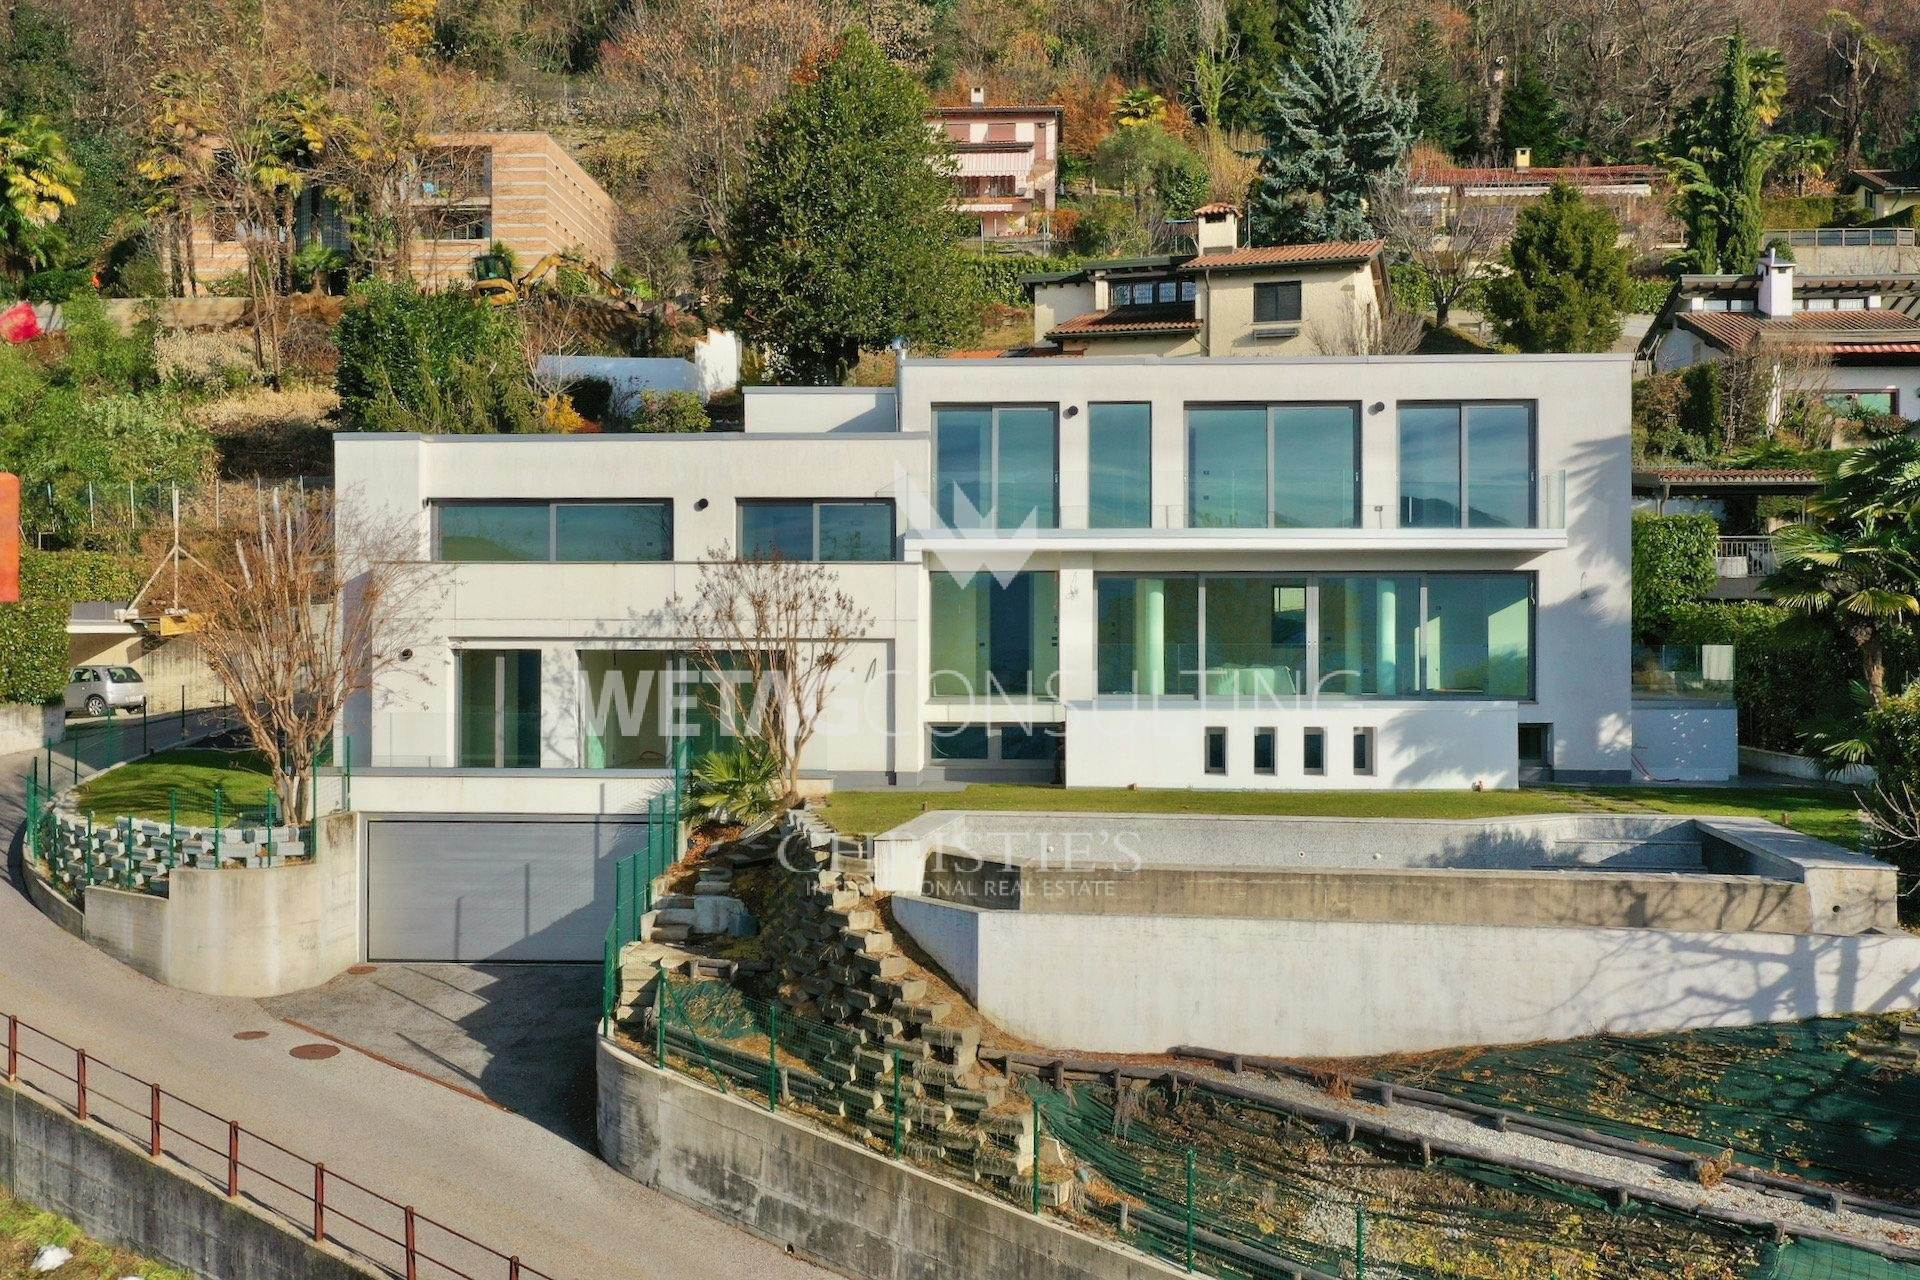 Villa/Townhouse for Sale at Spascious villa with swimming-pool & wonderful Lake Lugano view for sale Muzzano, Ticino,6933 Switzerland